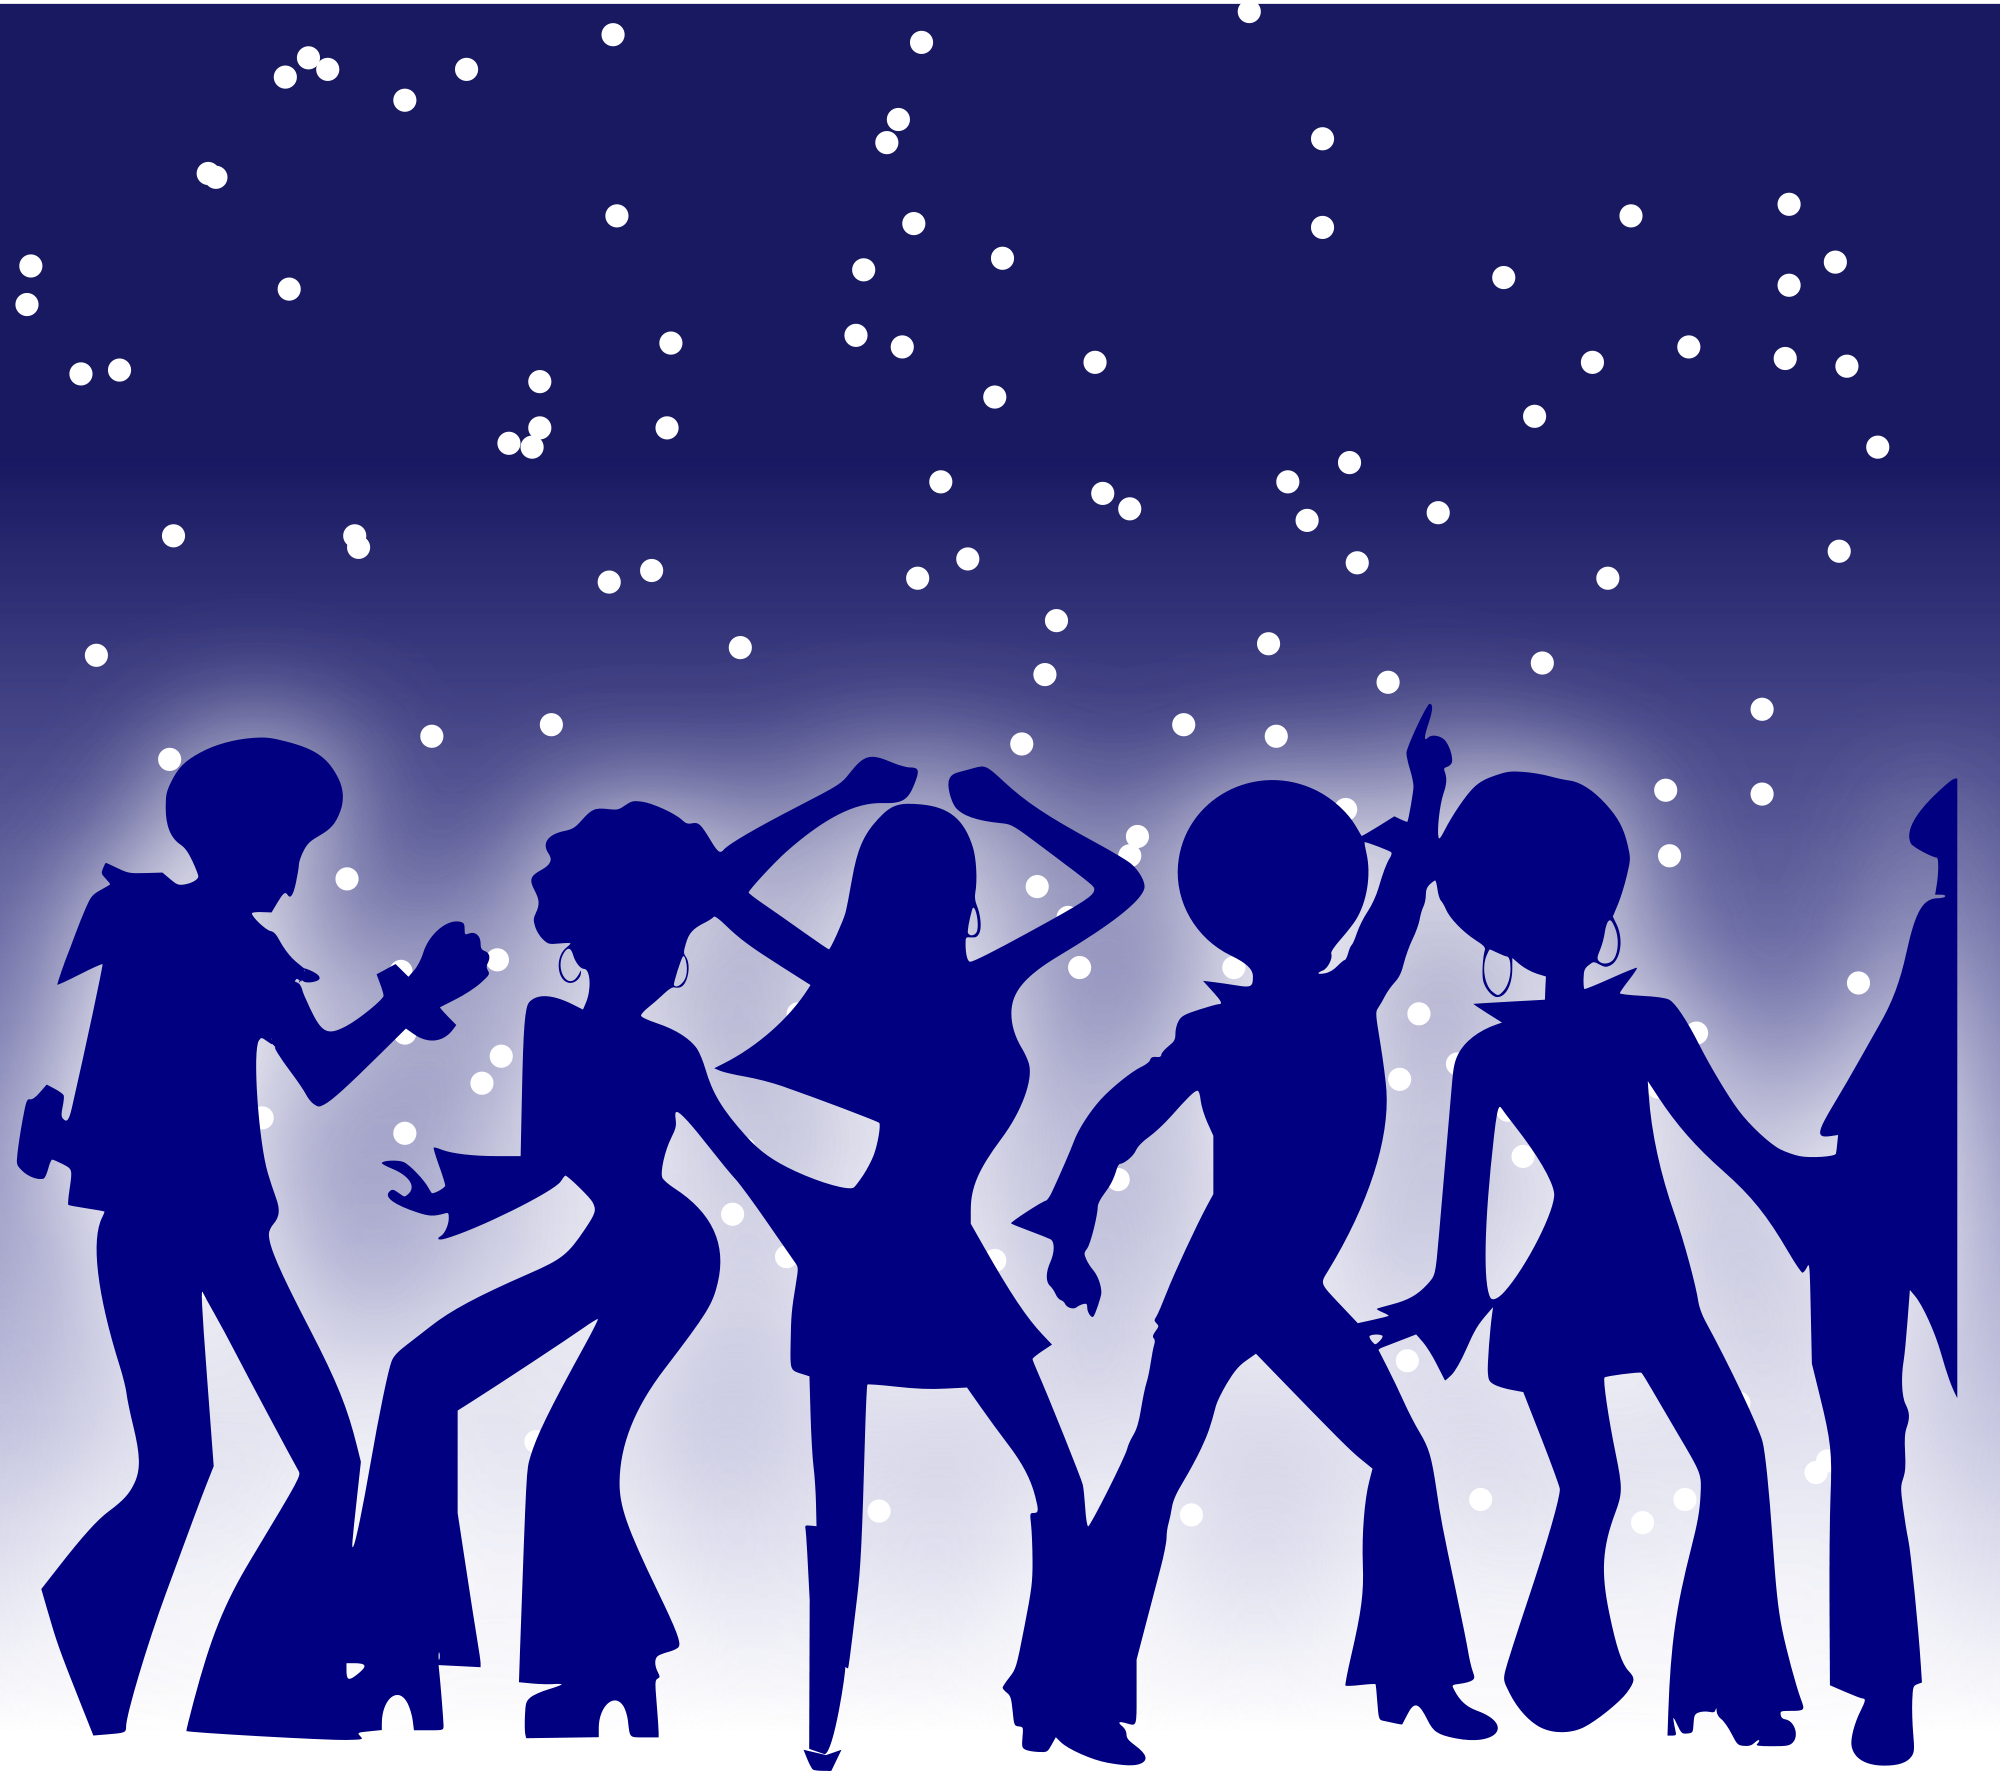 File disco dancers svg. Dance clipart dance team clip art black and white stock